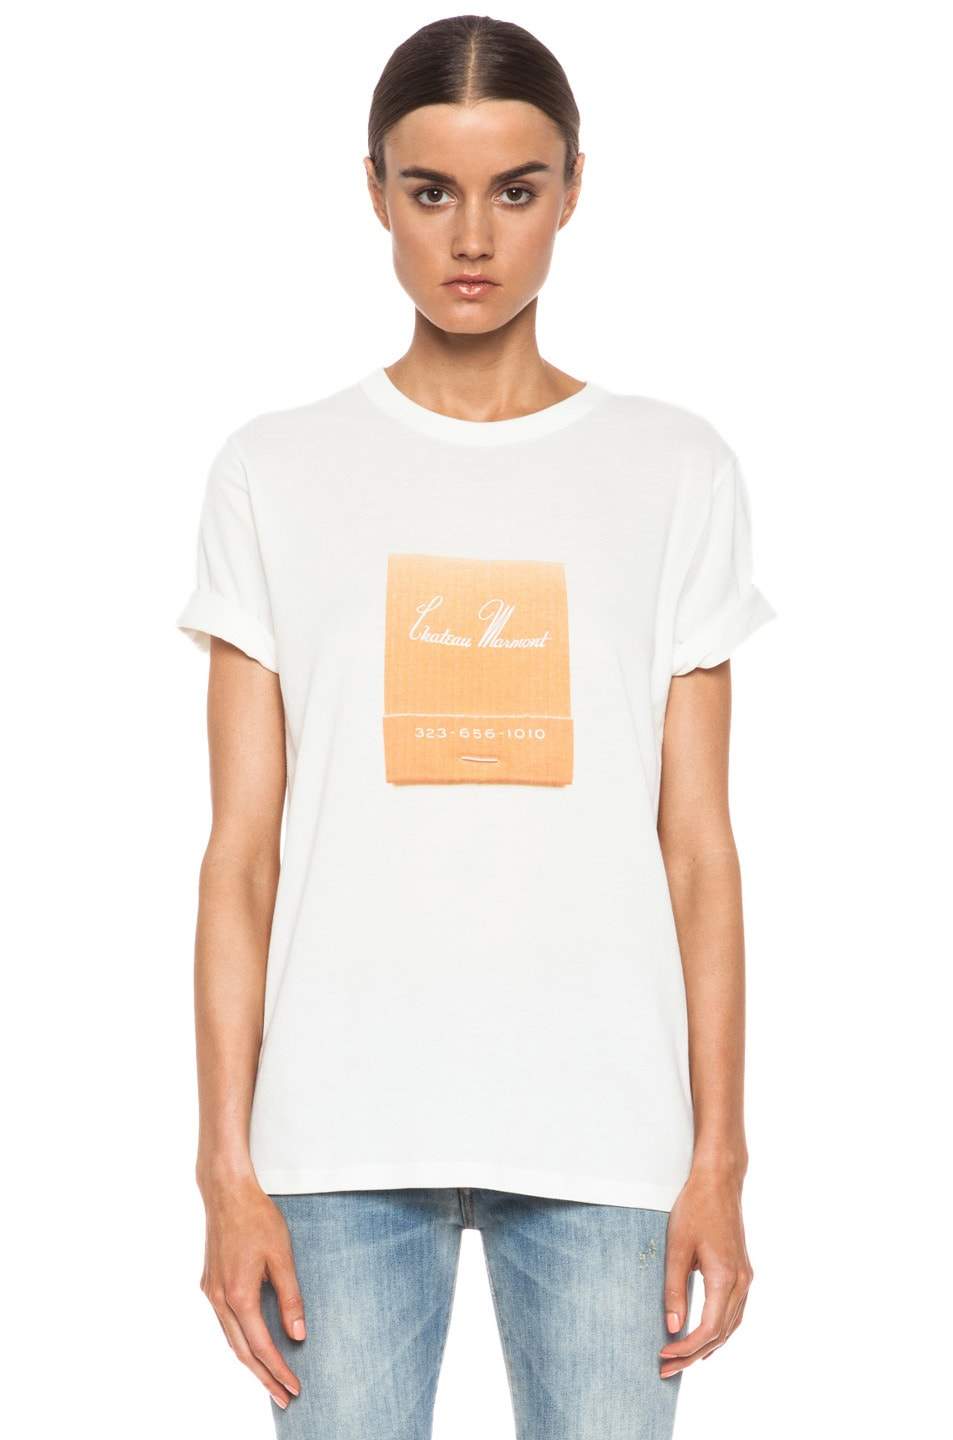 405e49698ca Image 1 of Band of Outsiders Chateau Marmont Cotton Tee in White